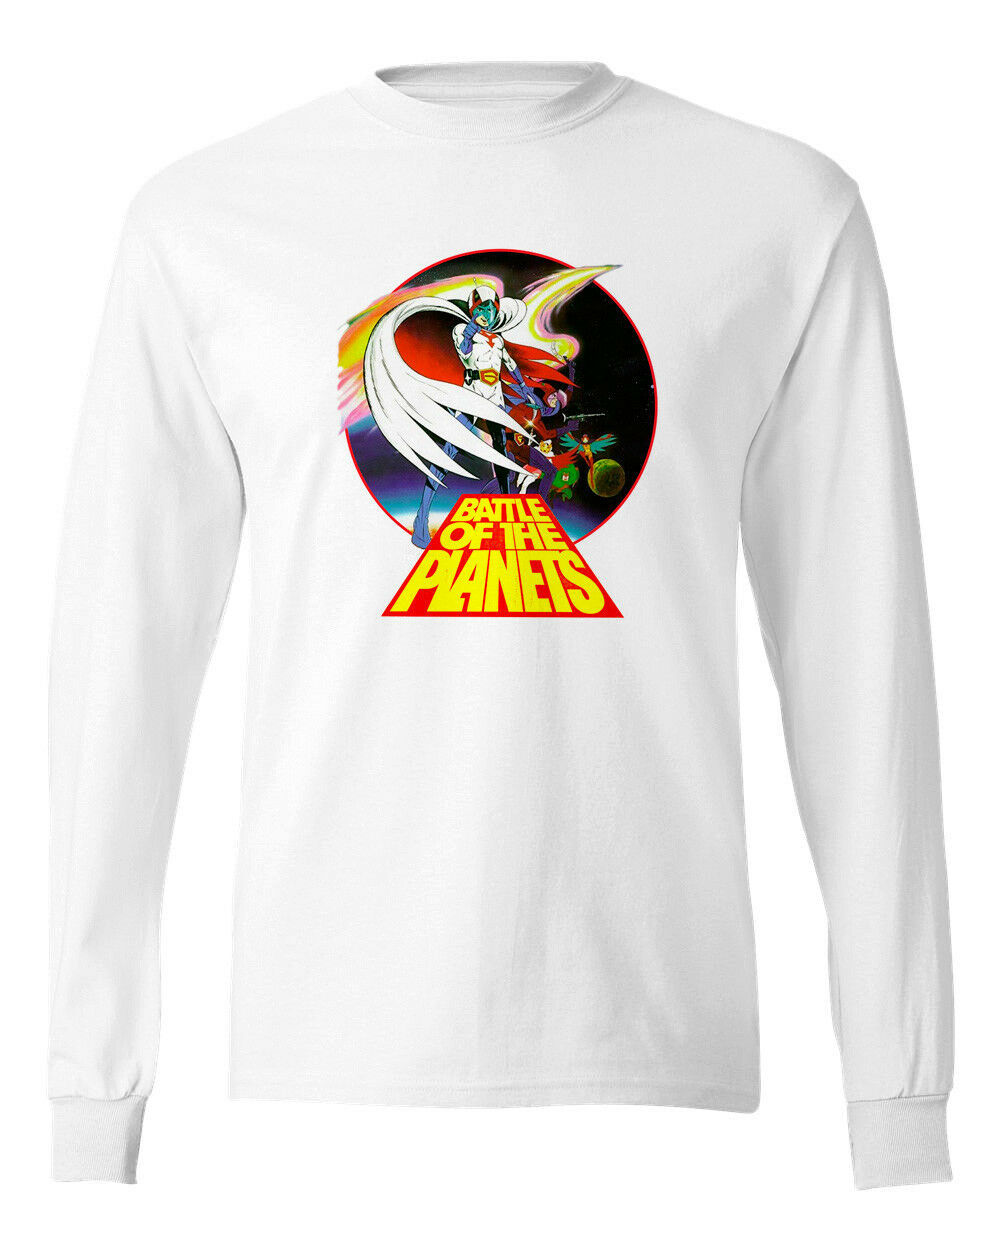 Battle of Planets T-shirt Long Sleeve 80s anime Saturday Cartoon cotton tee